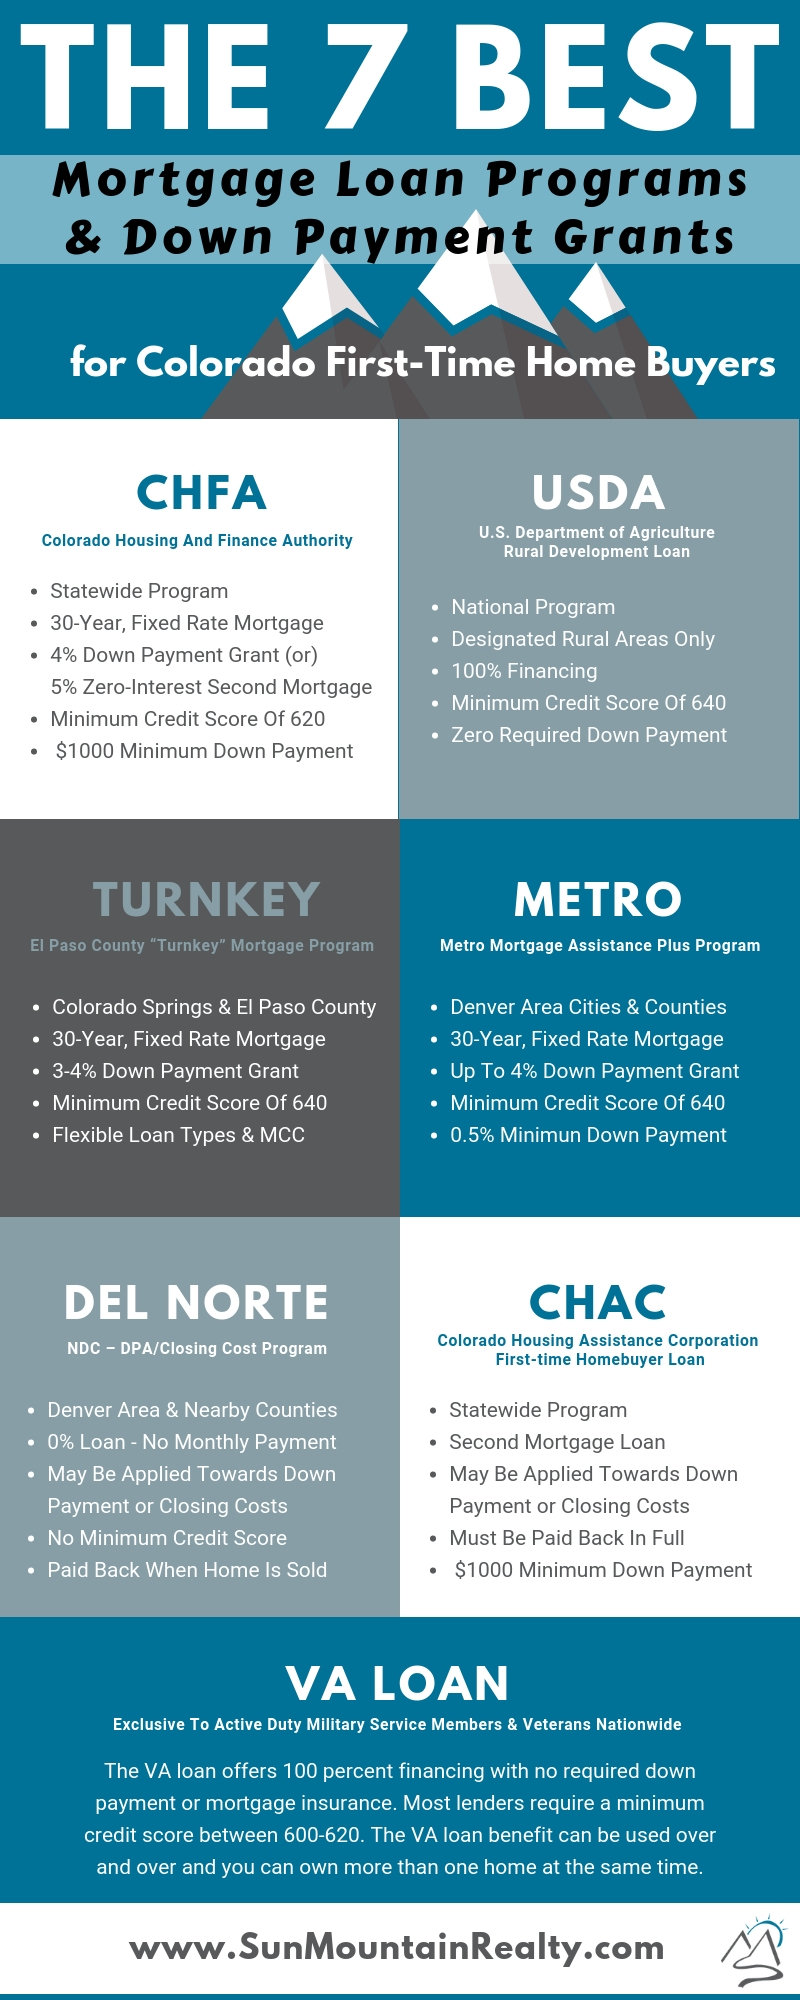 7-best-colorado-mortgage-loan-and-downpayment-grants